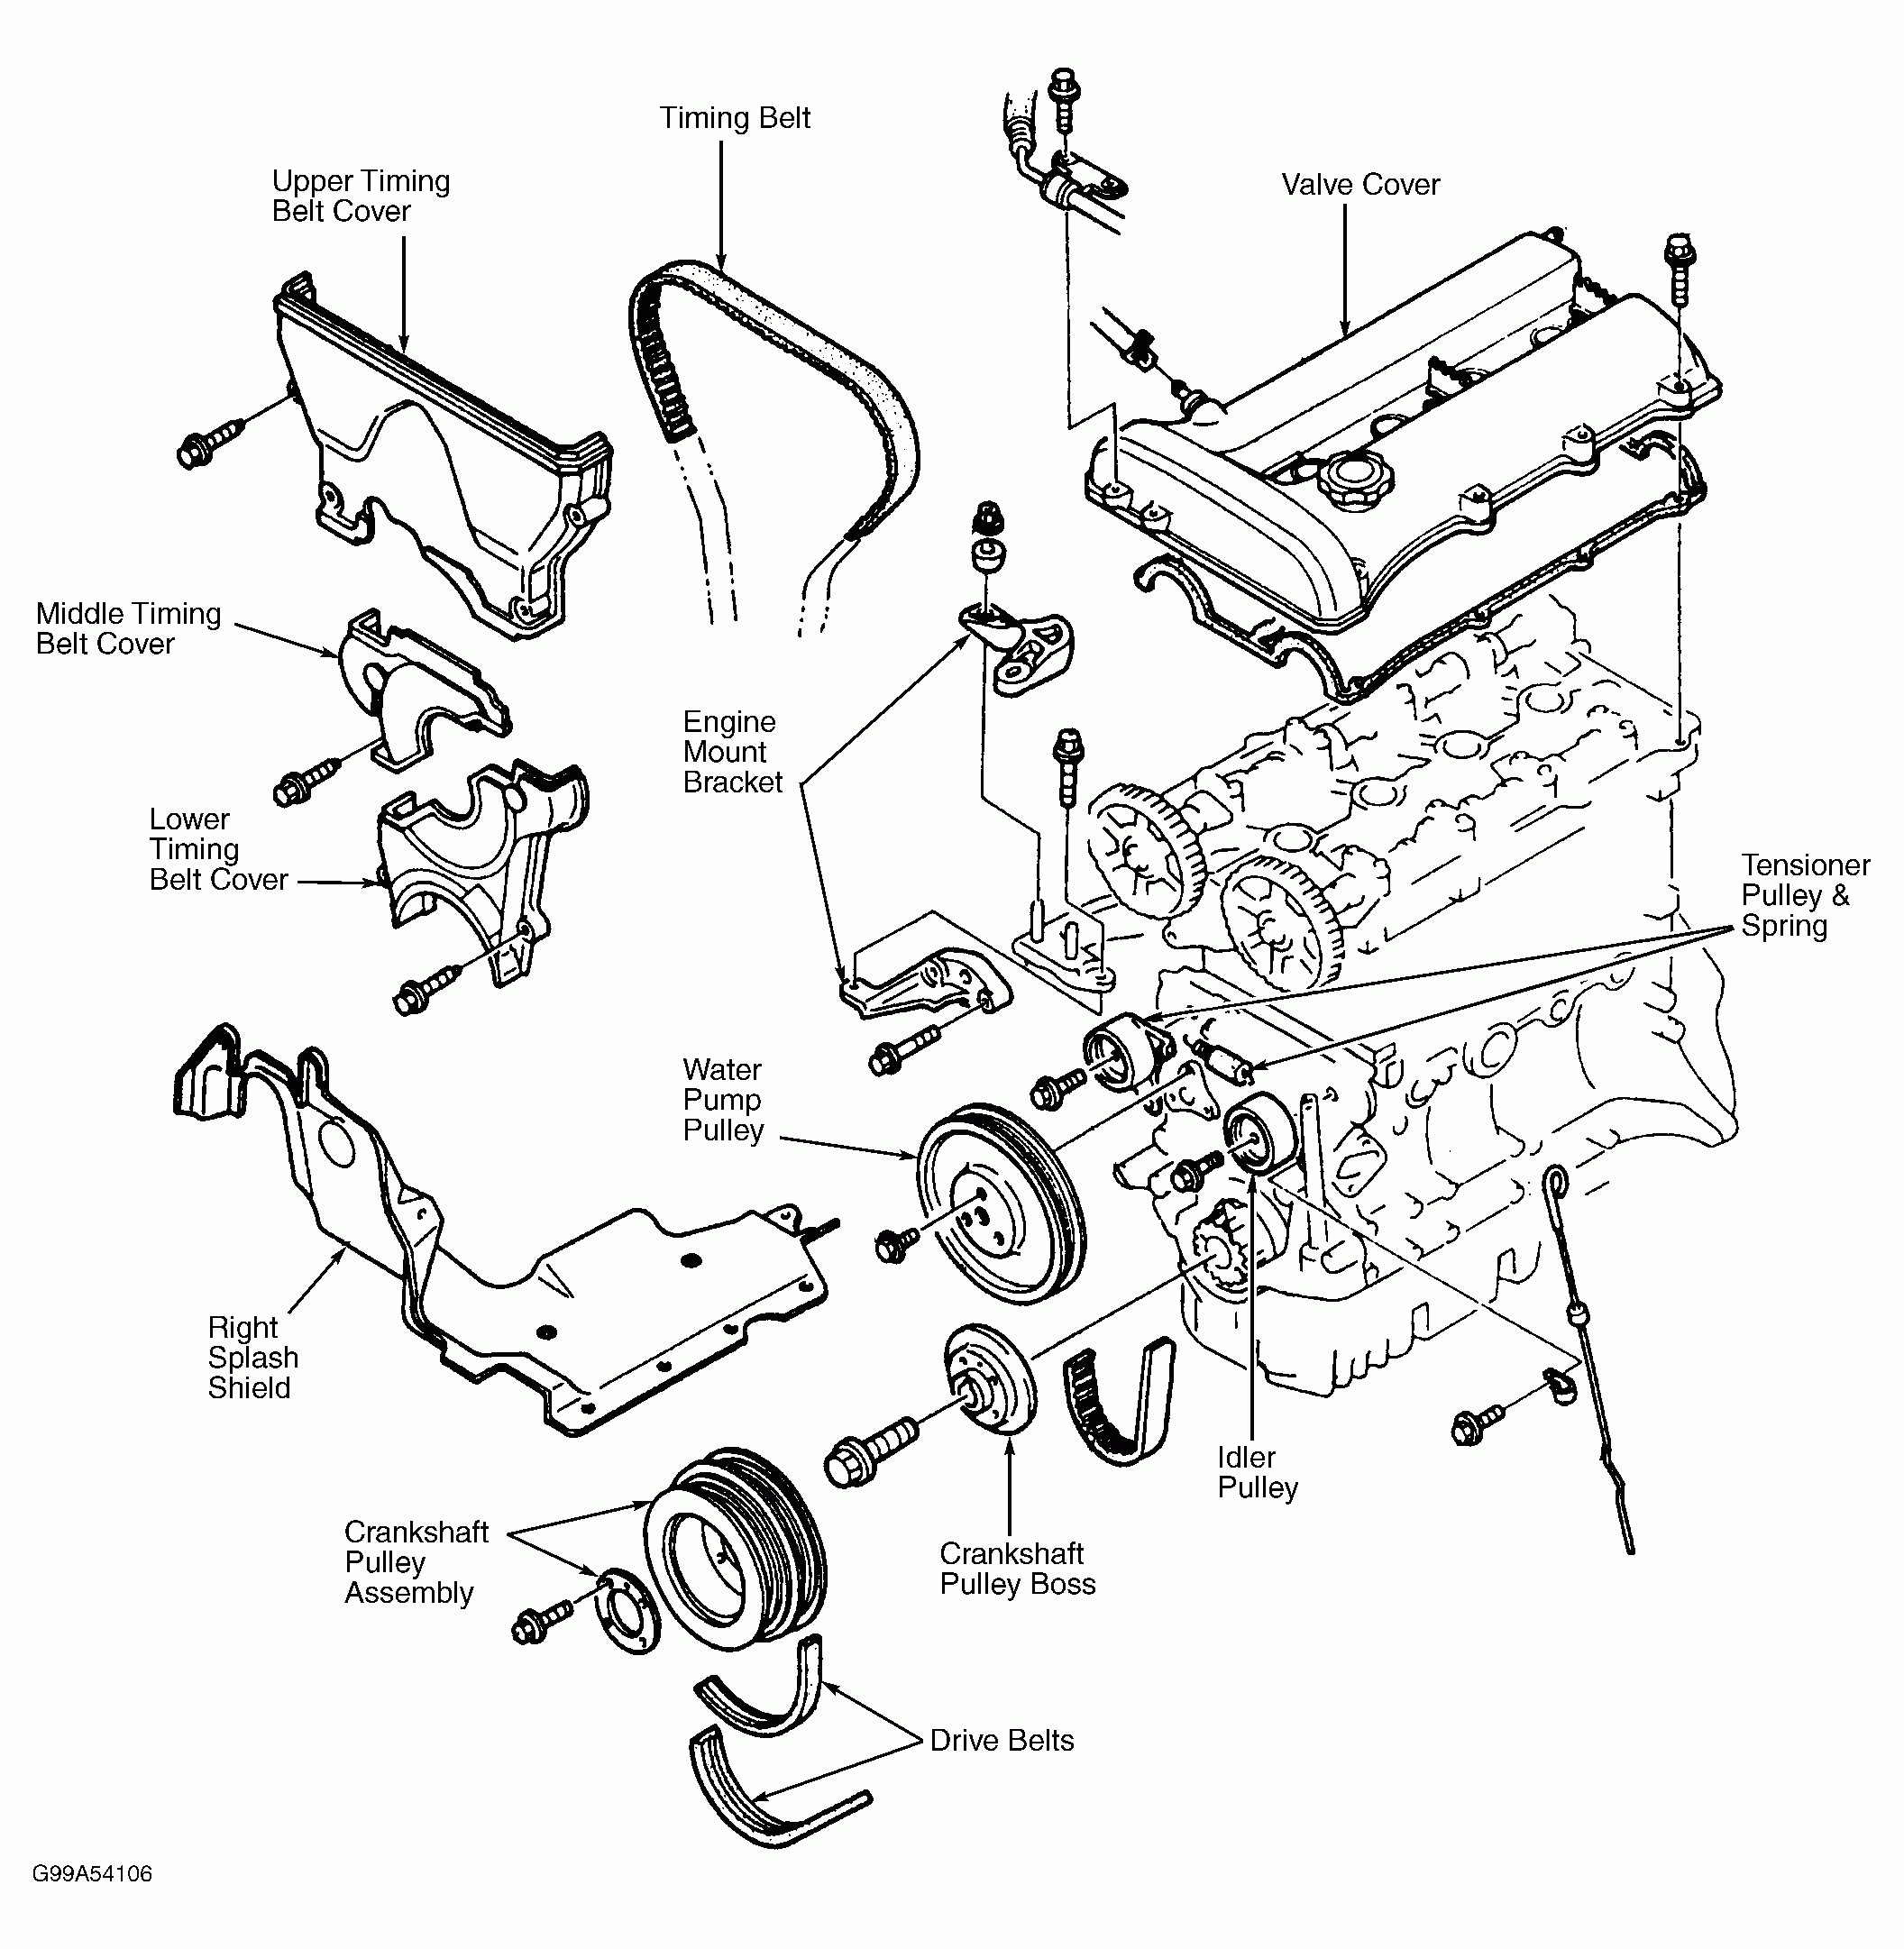 2002 mazda protege fuse diagram 1997 mazda protege engine diagram wiring diagrams click  1997 mazda protege engine diagram